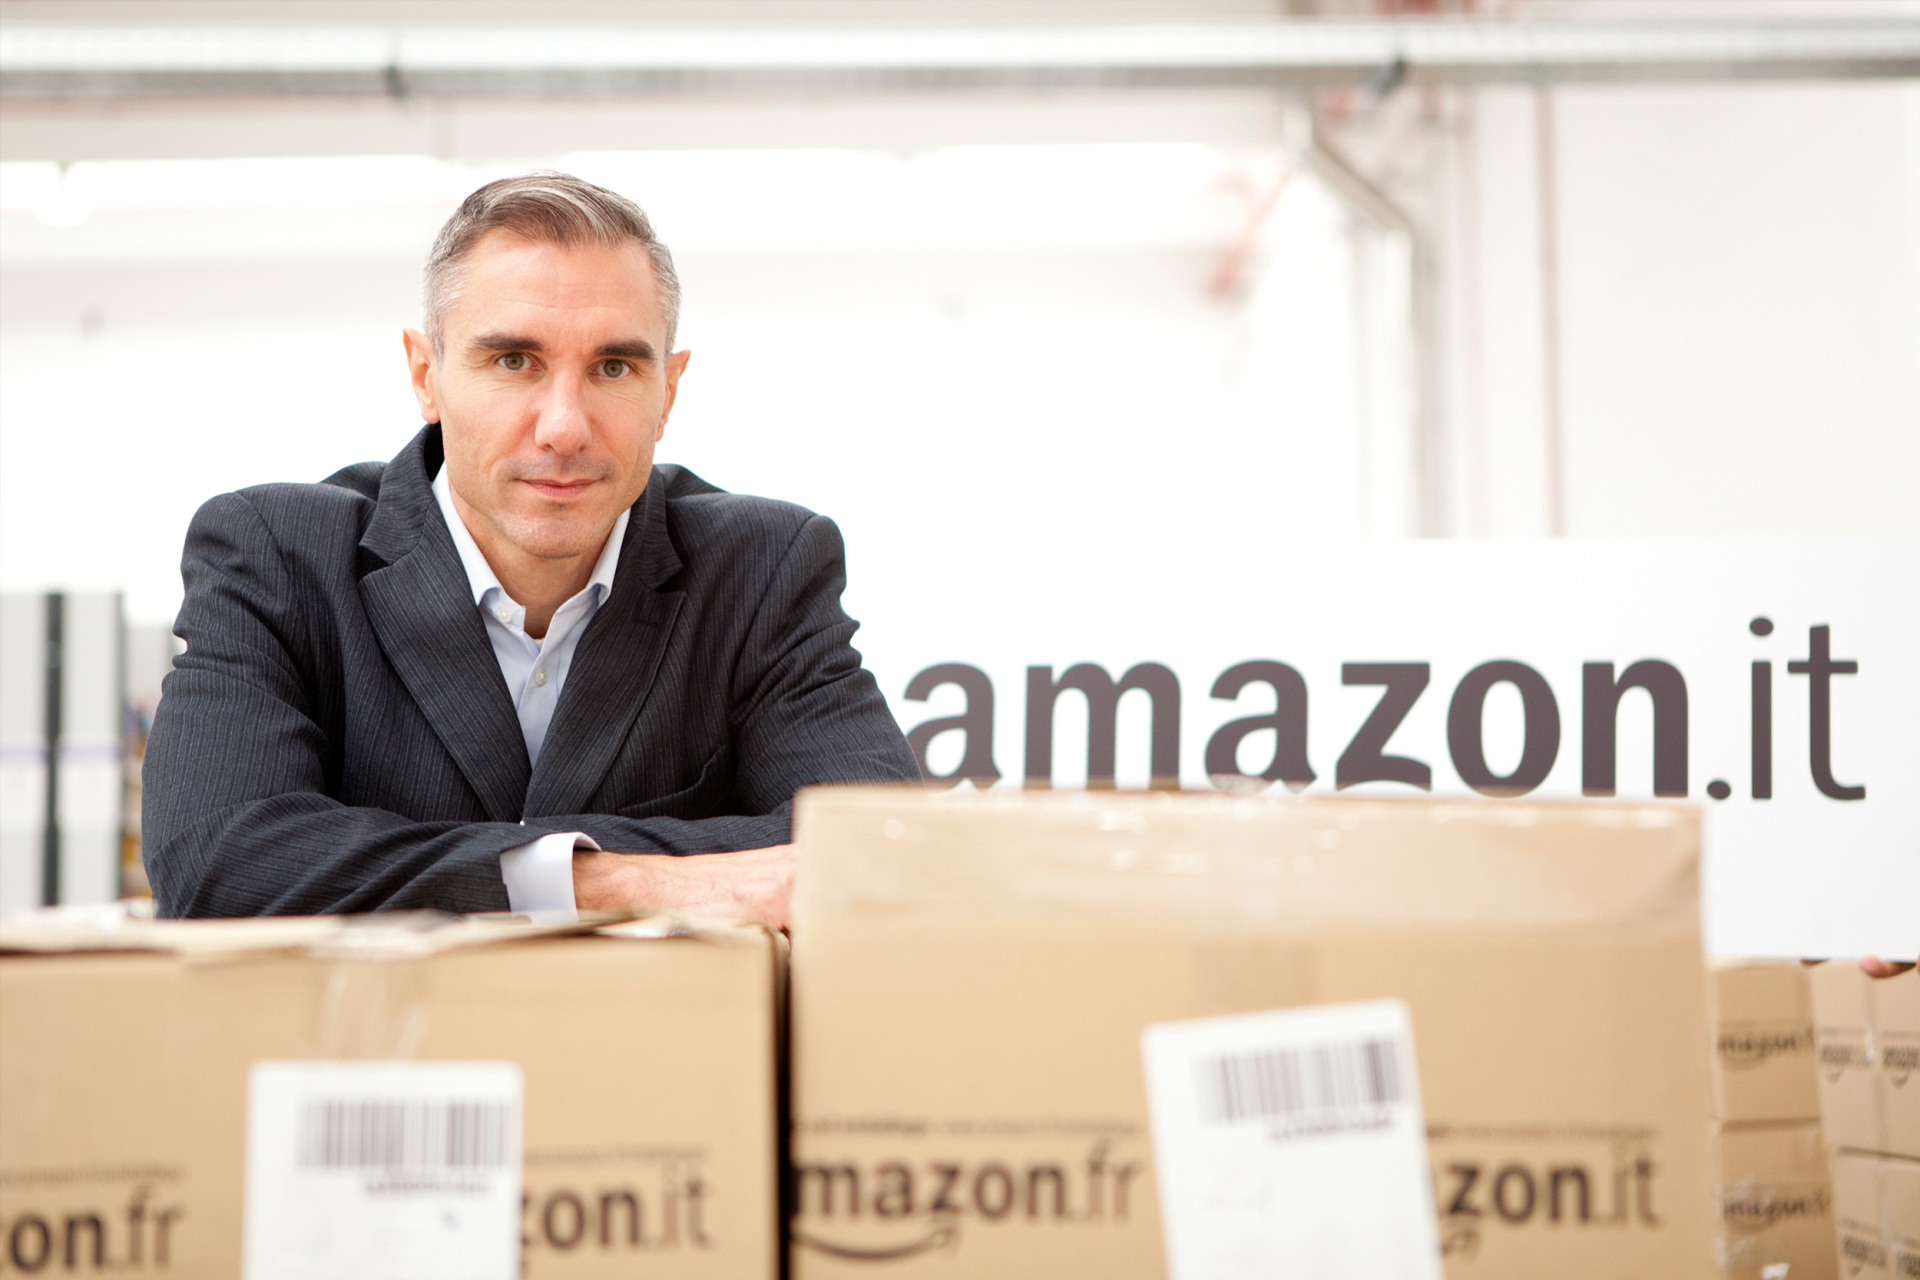 Stefano Perego Southern Europe Regional Director at Amazon